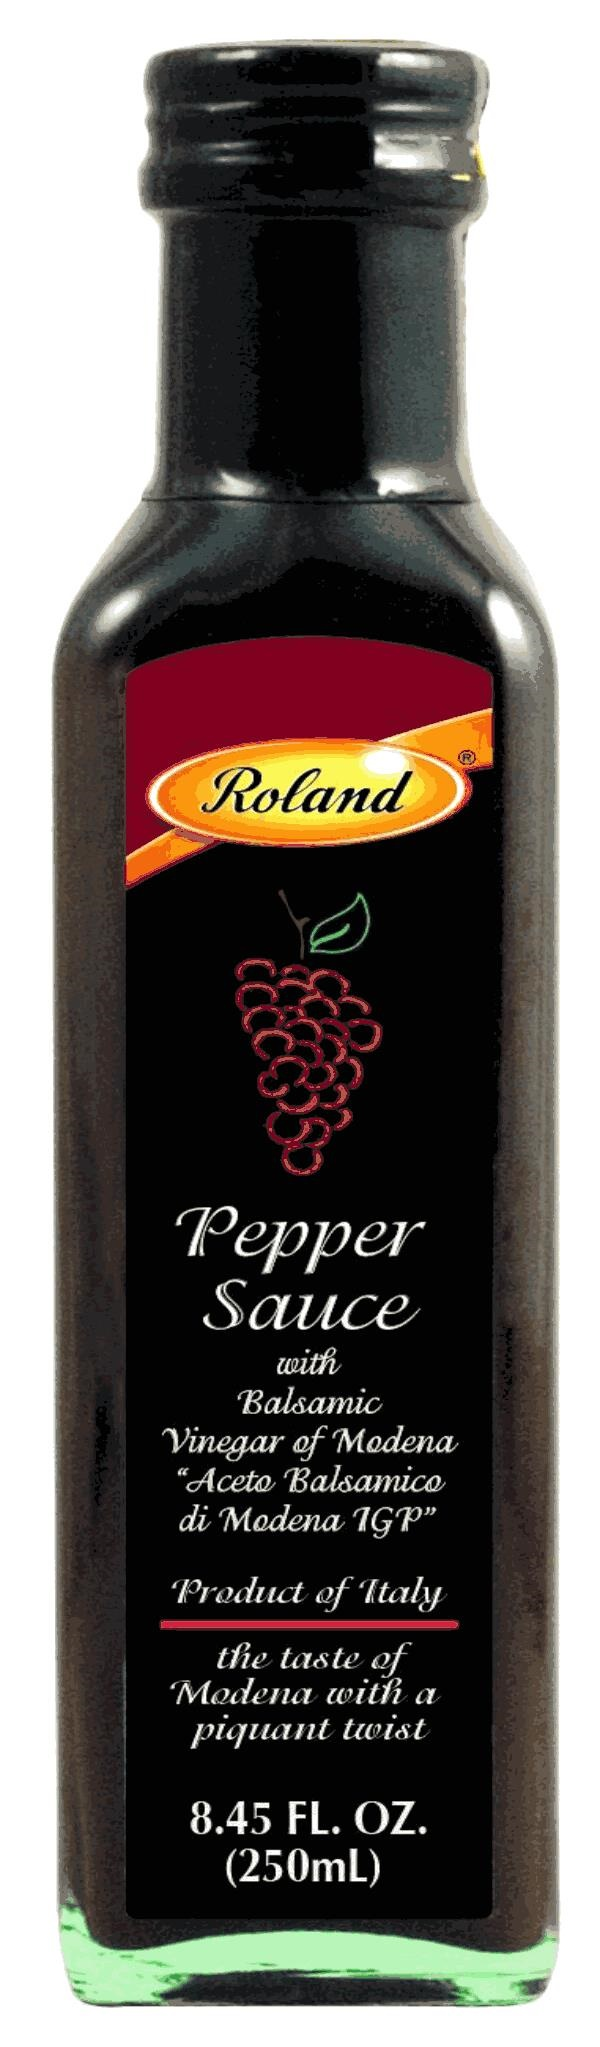 Picture of Balsamic Hot Sauce - Roland Balsamic Hot Pepper Sauce 8.5 oz&nbsp;- Item No.&nbsp;13522